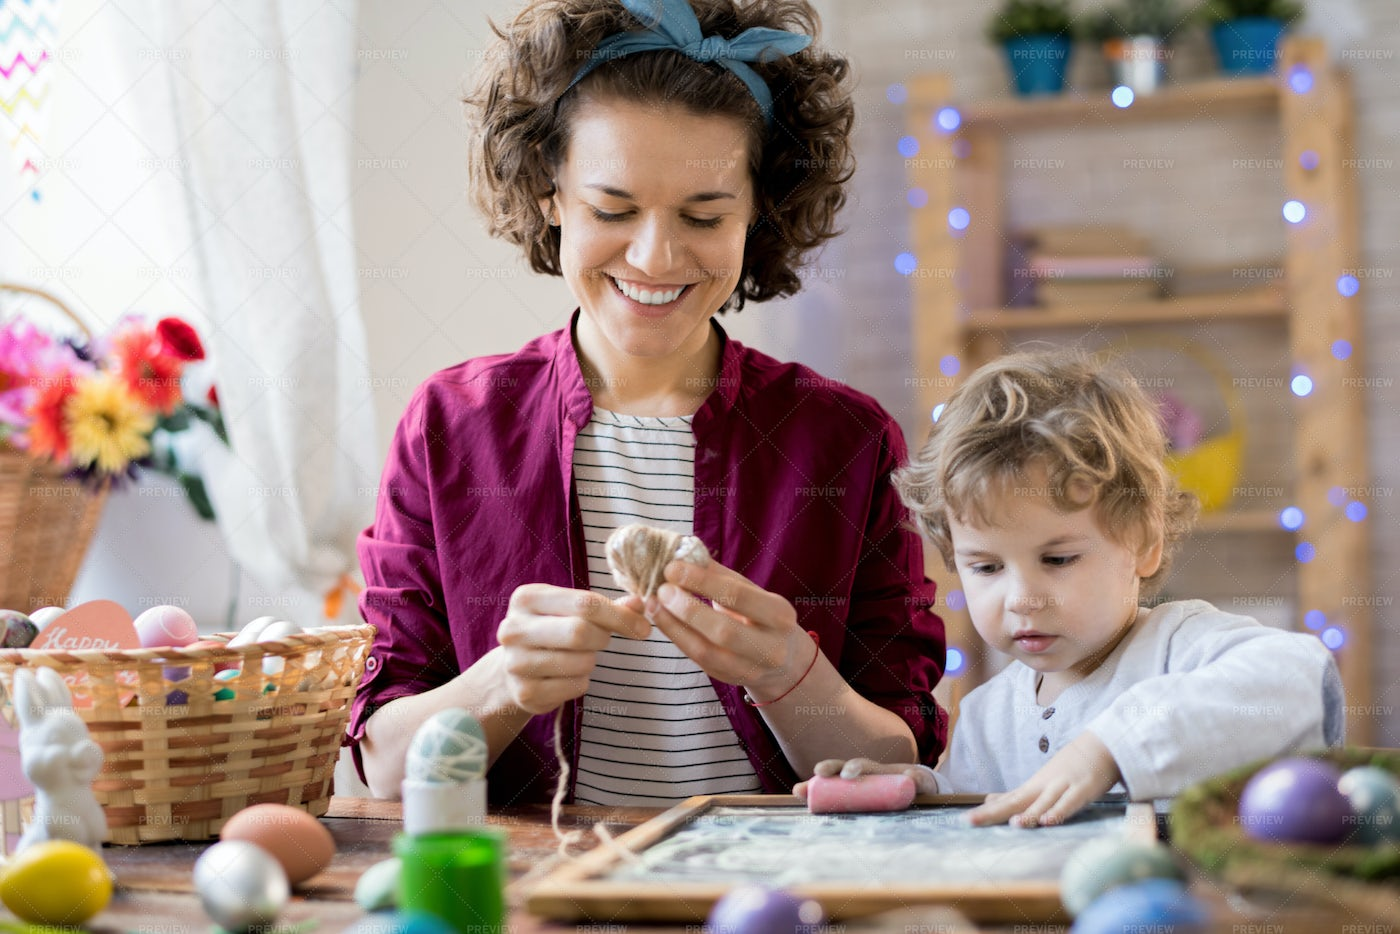 Young Mother Making Easter...: Stock Photos